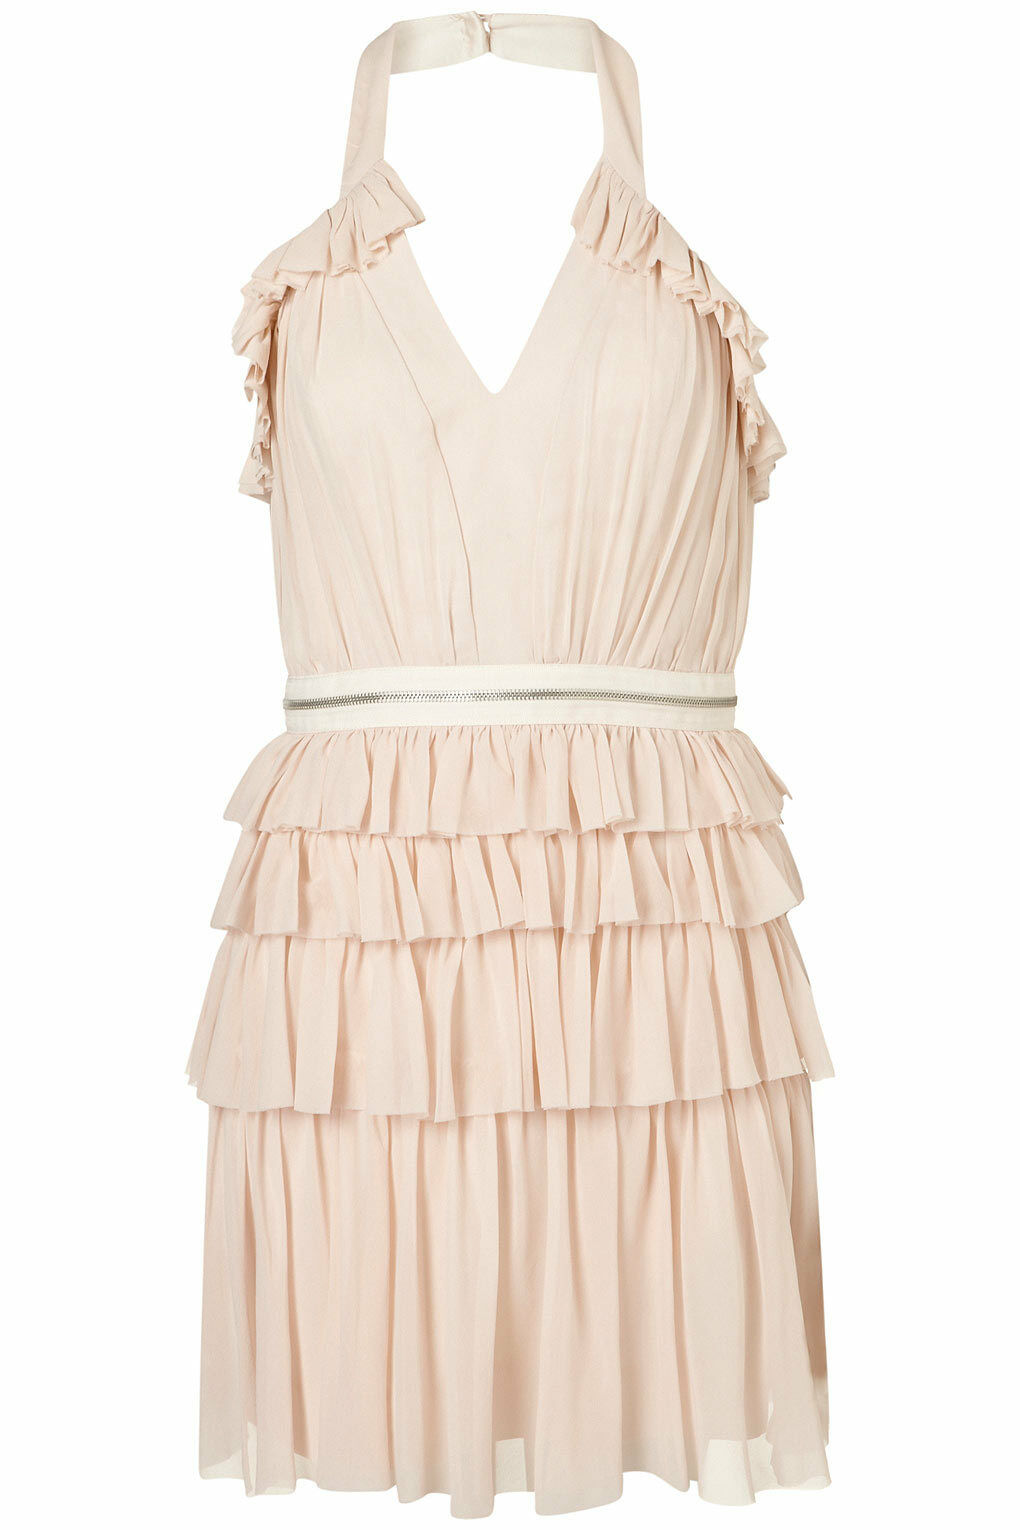 TOPSHOP PALE PINK PINK PINK NUDE SILK RUFFLE HALTER DRESS LIMITED EDITION 14 42 10 9d61a1